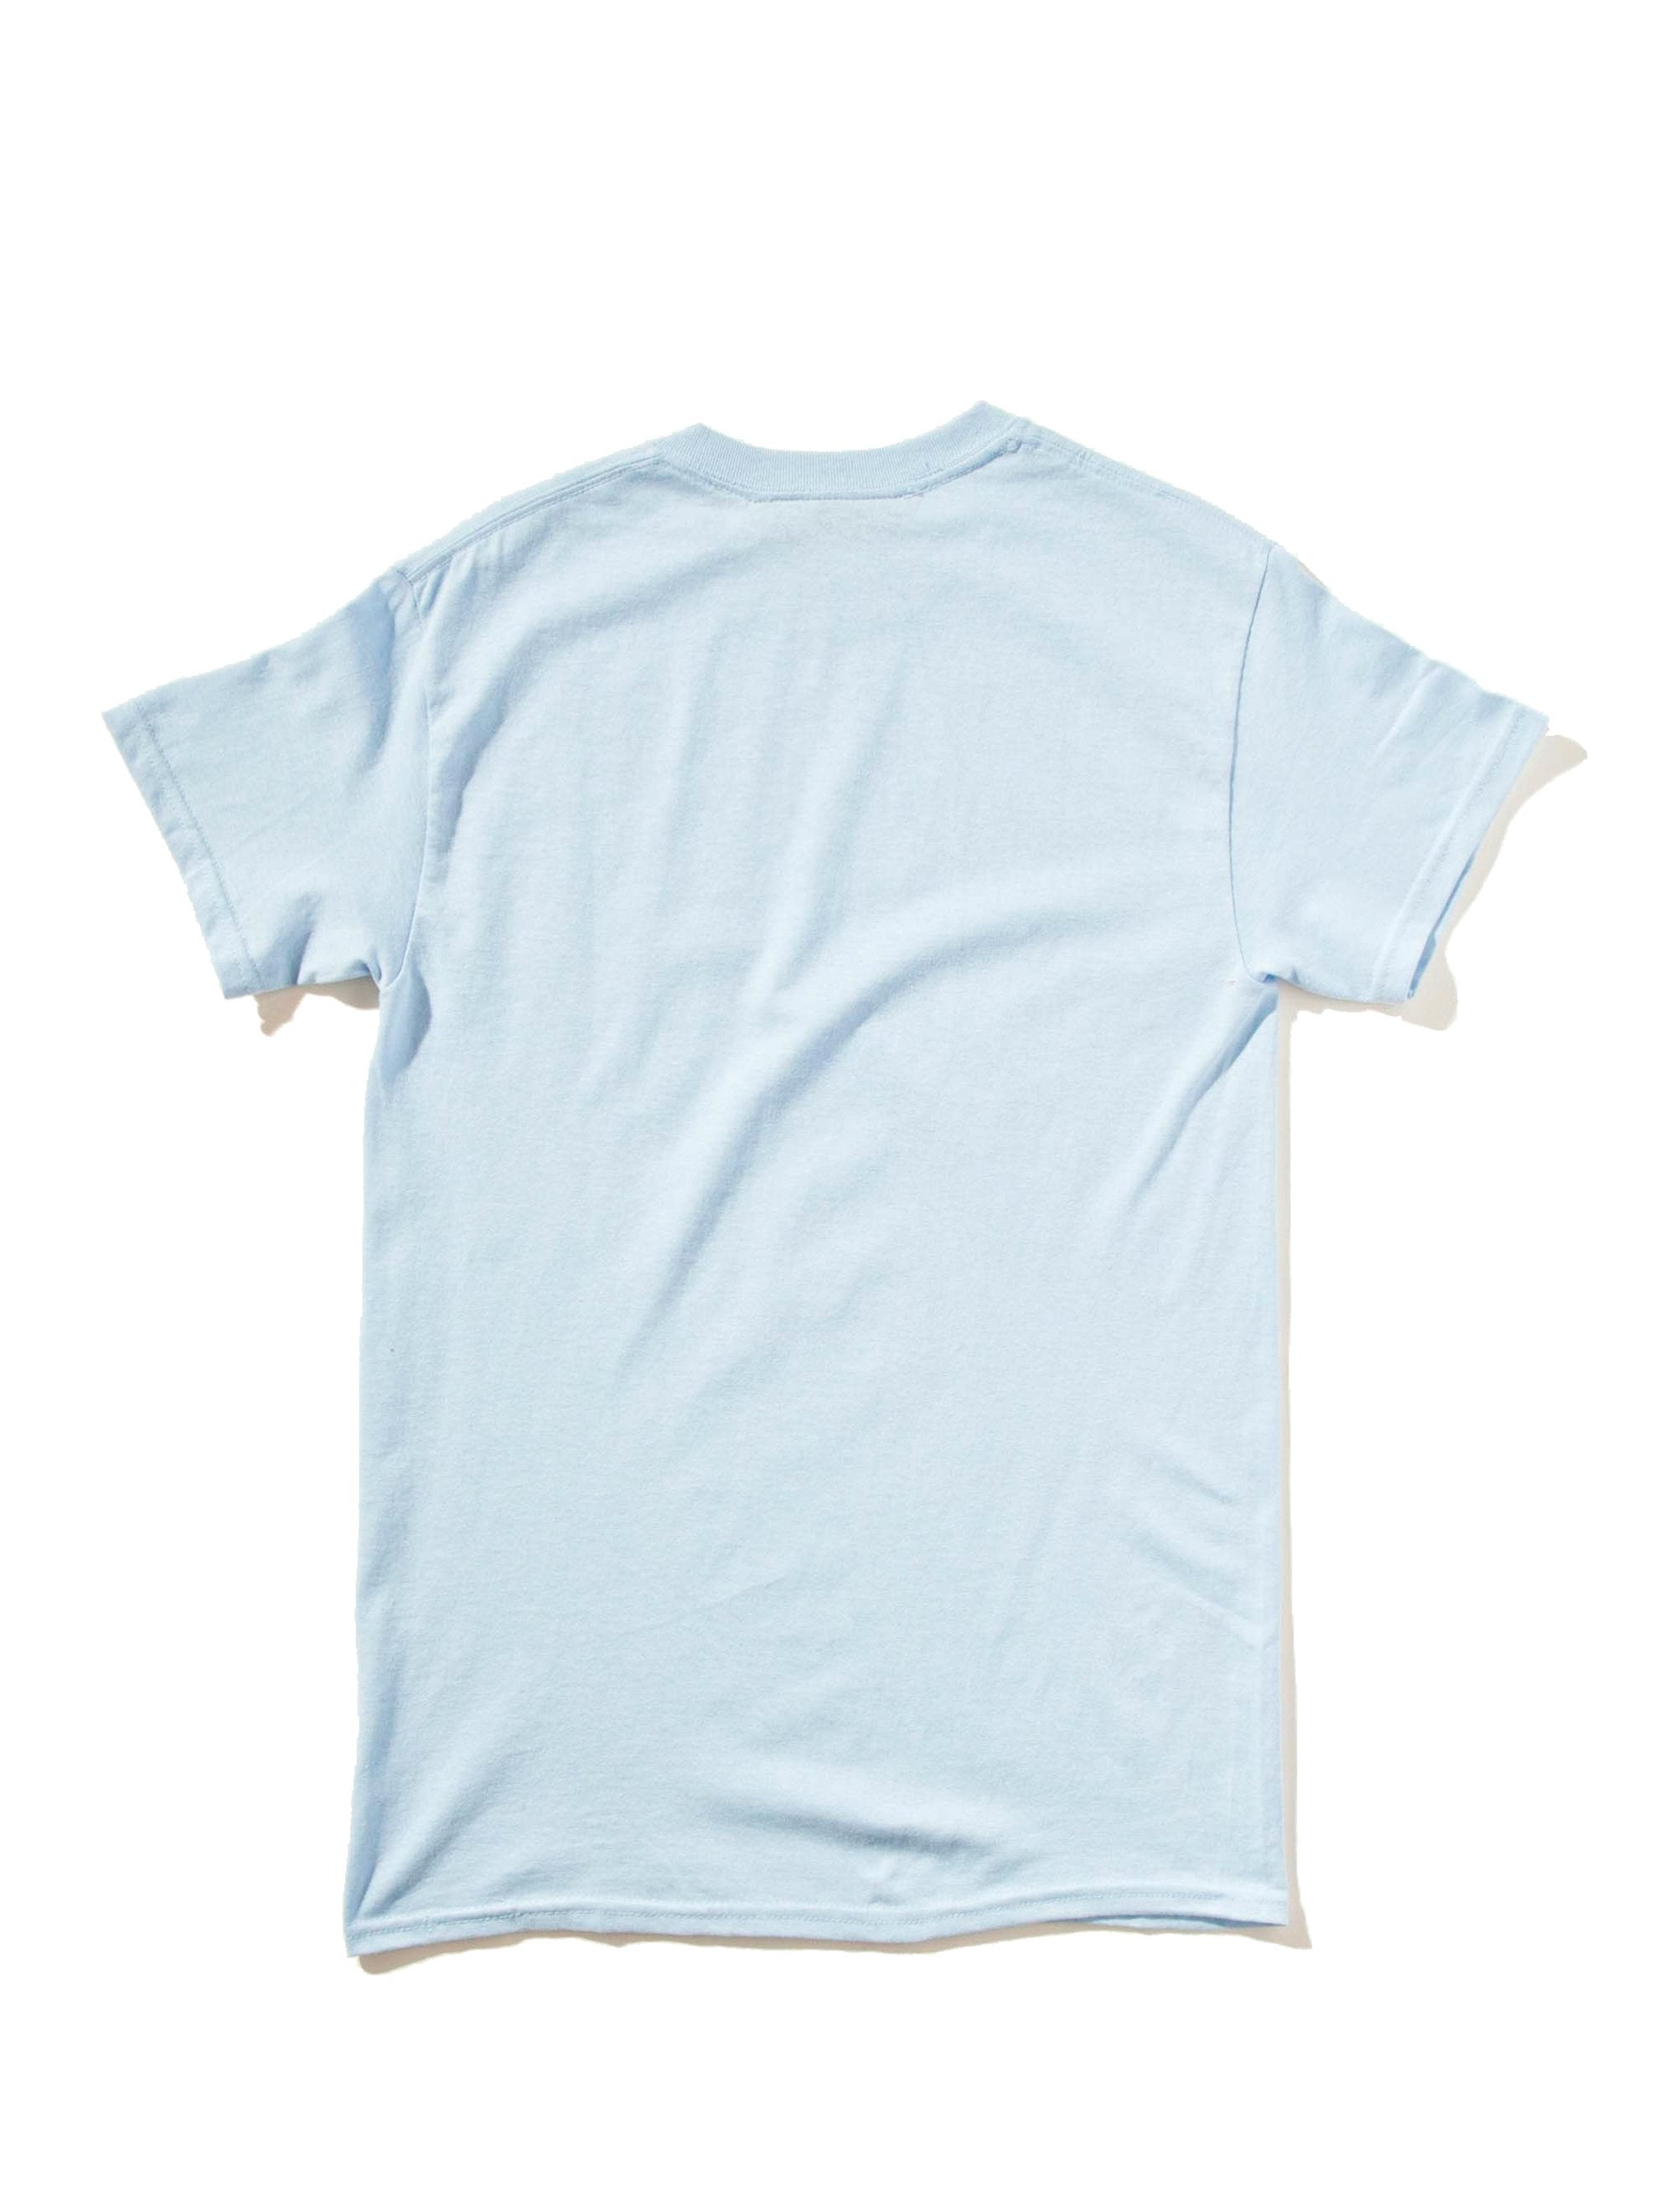 Blue Groovy Call Me T-Shirt 6